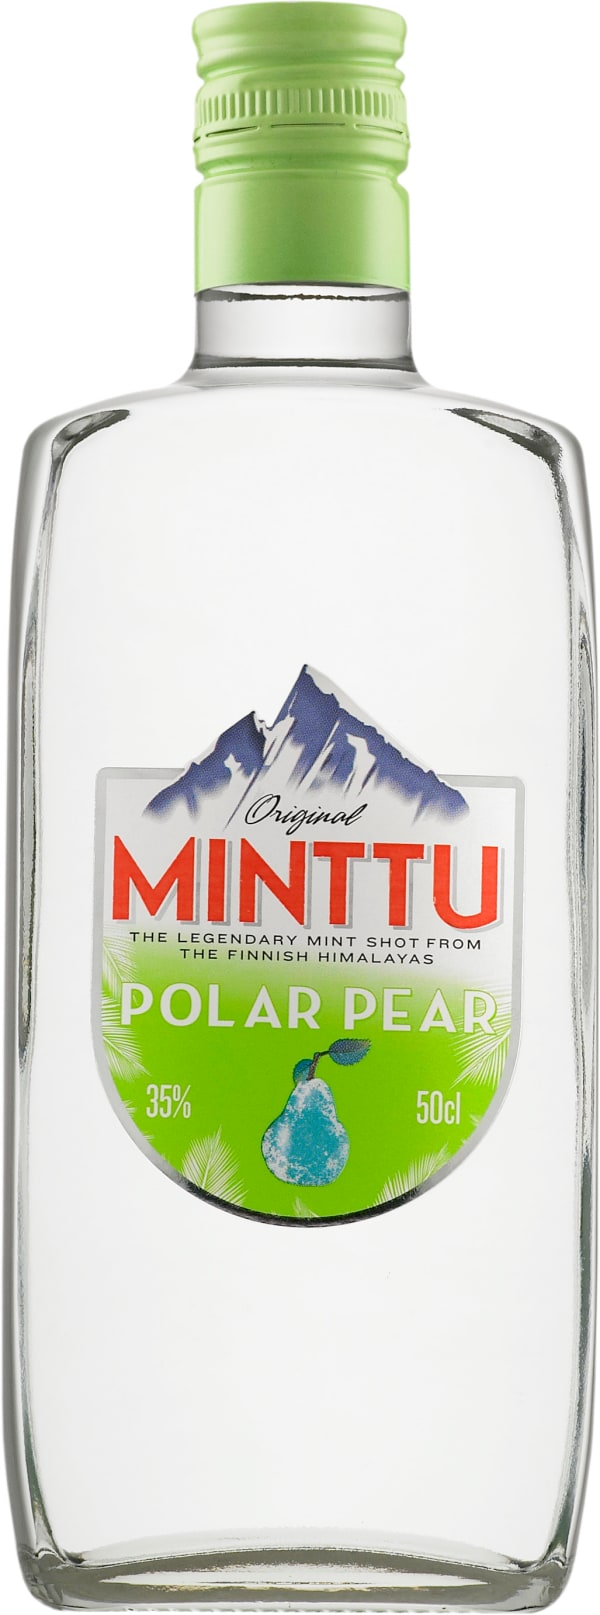 Minttu Polar Pear